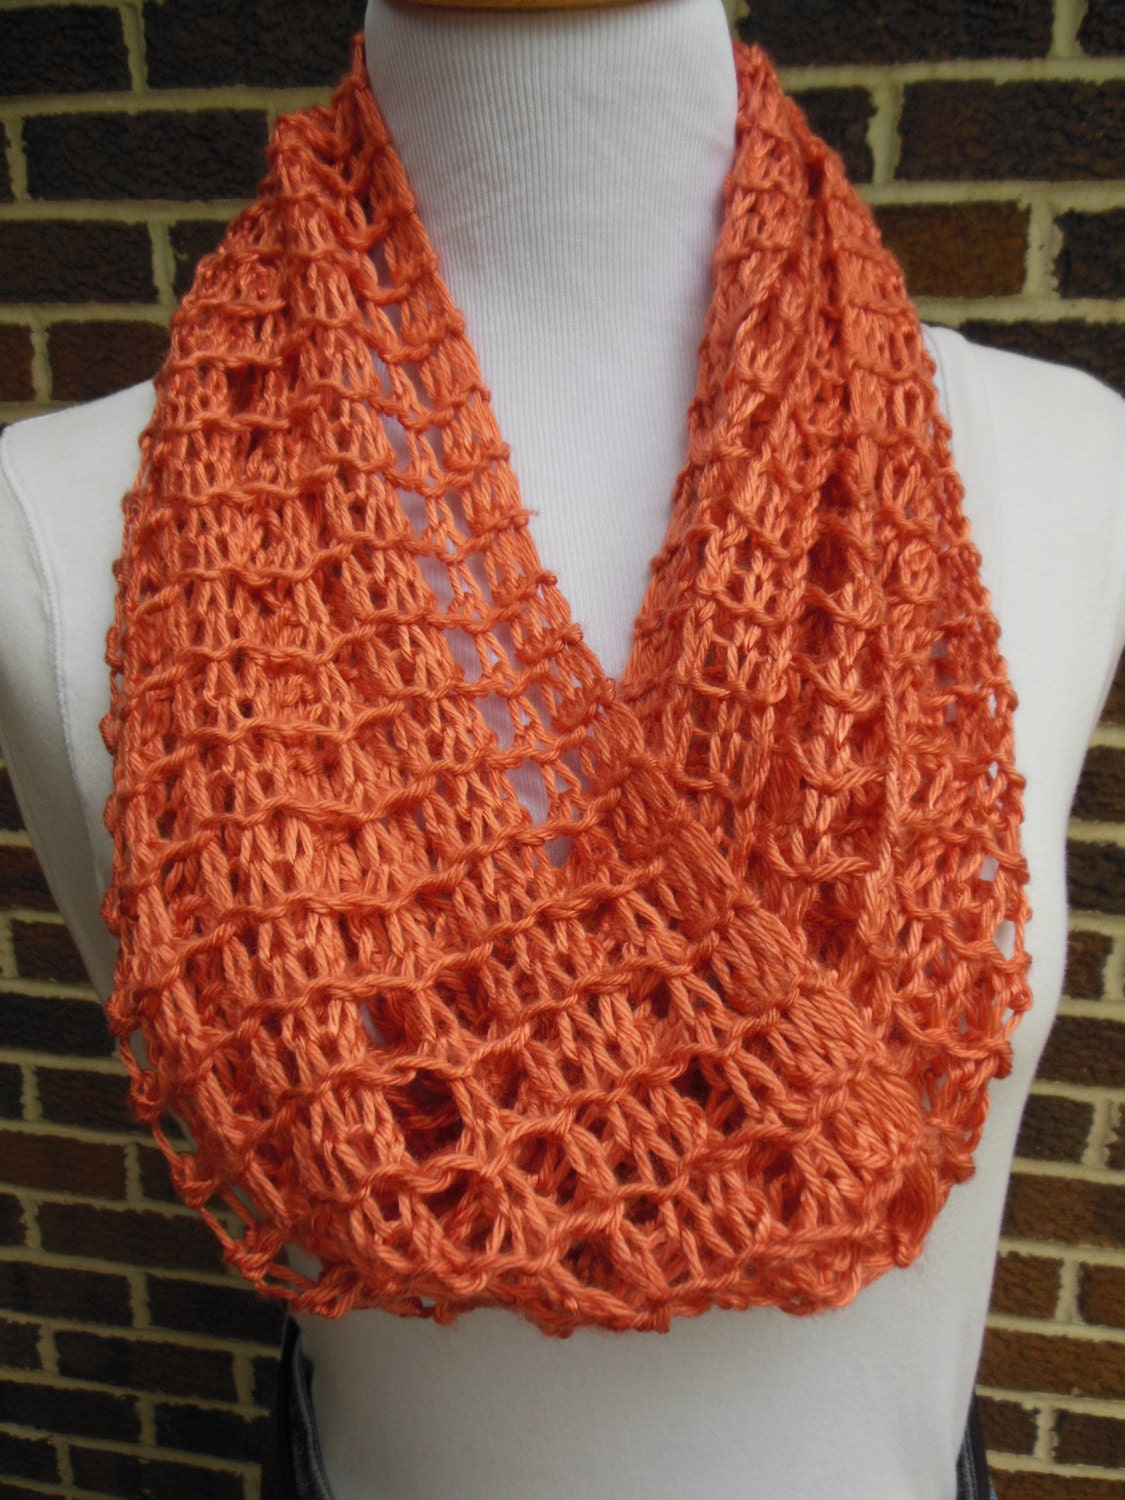 Persimmon Rust Orange Infinity Scarf Hand Knit Lacy Light